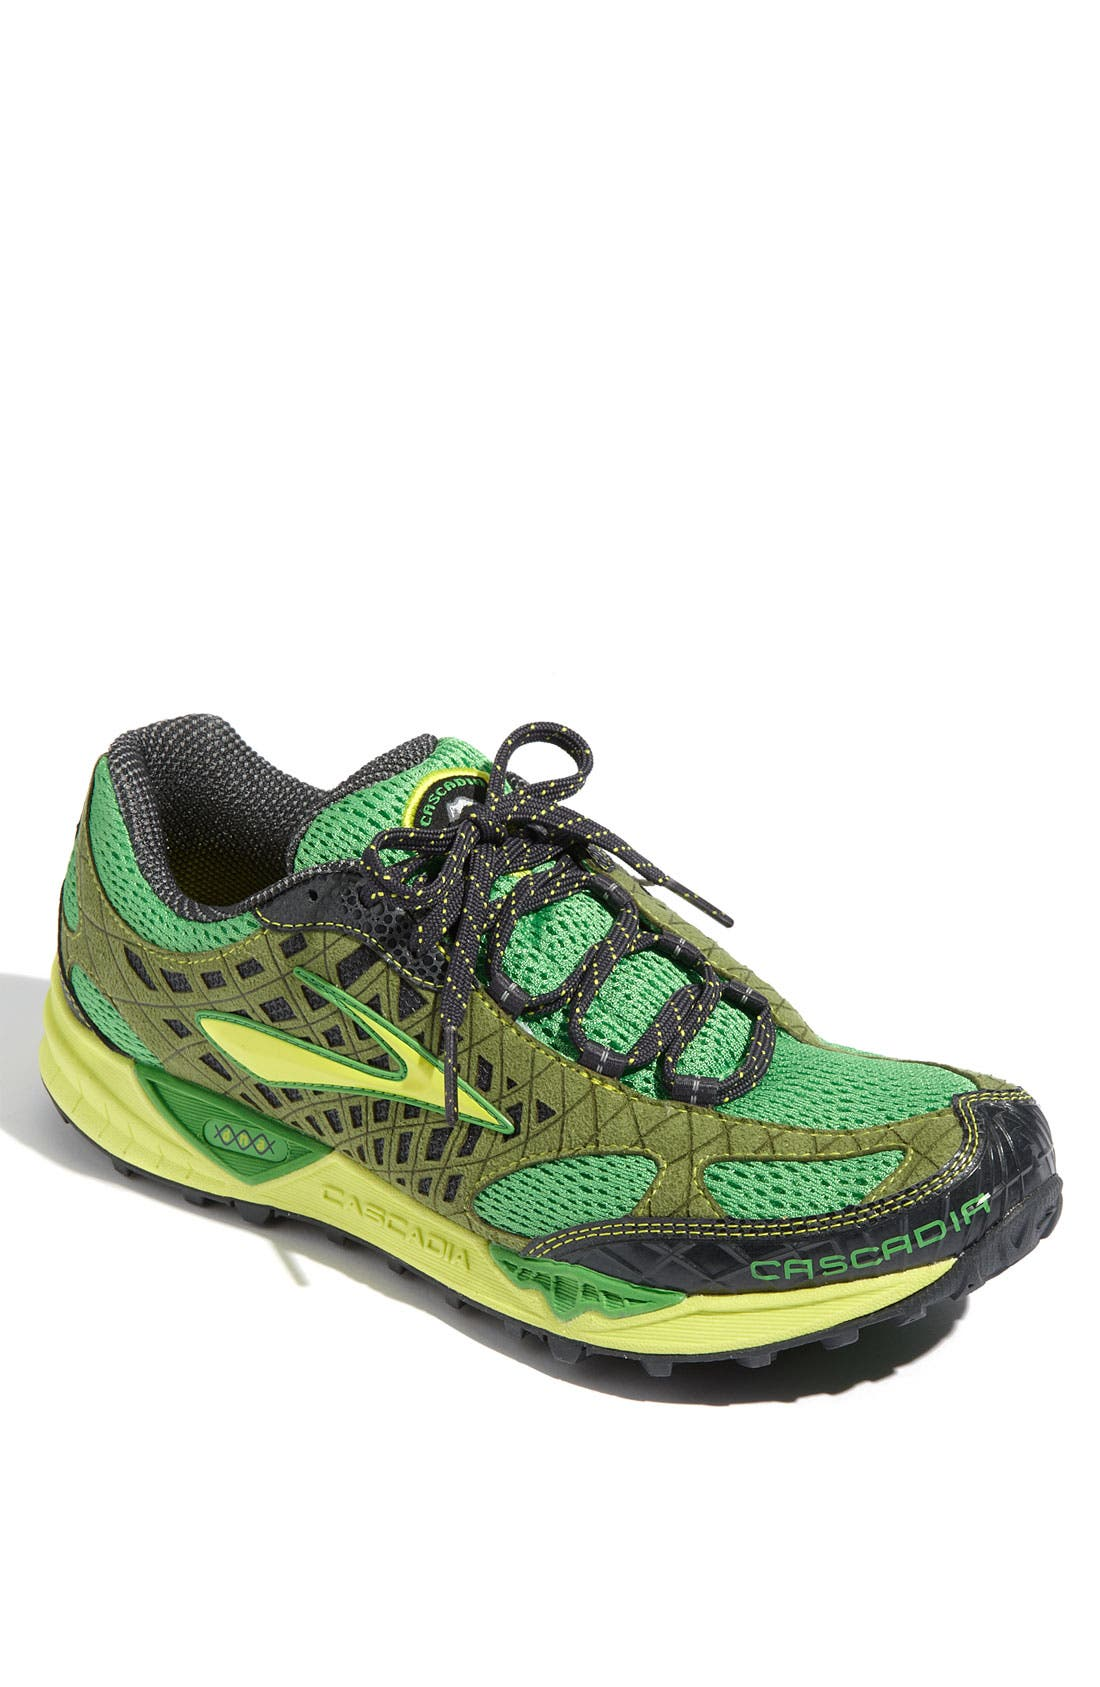 Main Image - Brooks 'Cascadia 7' Trail Running Shoe (Men)